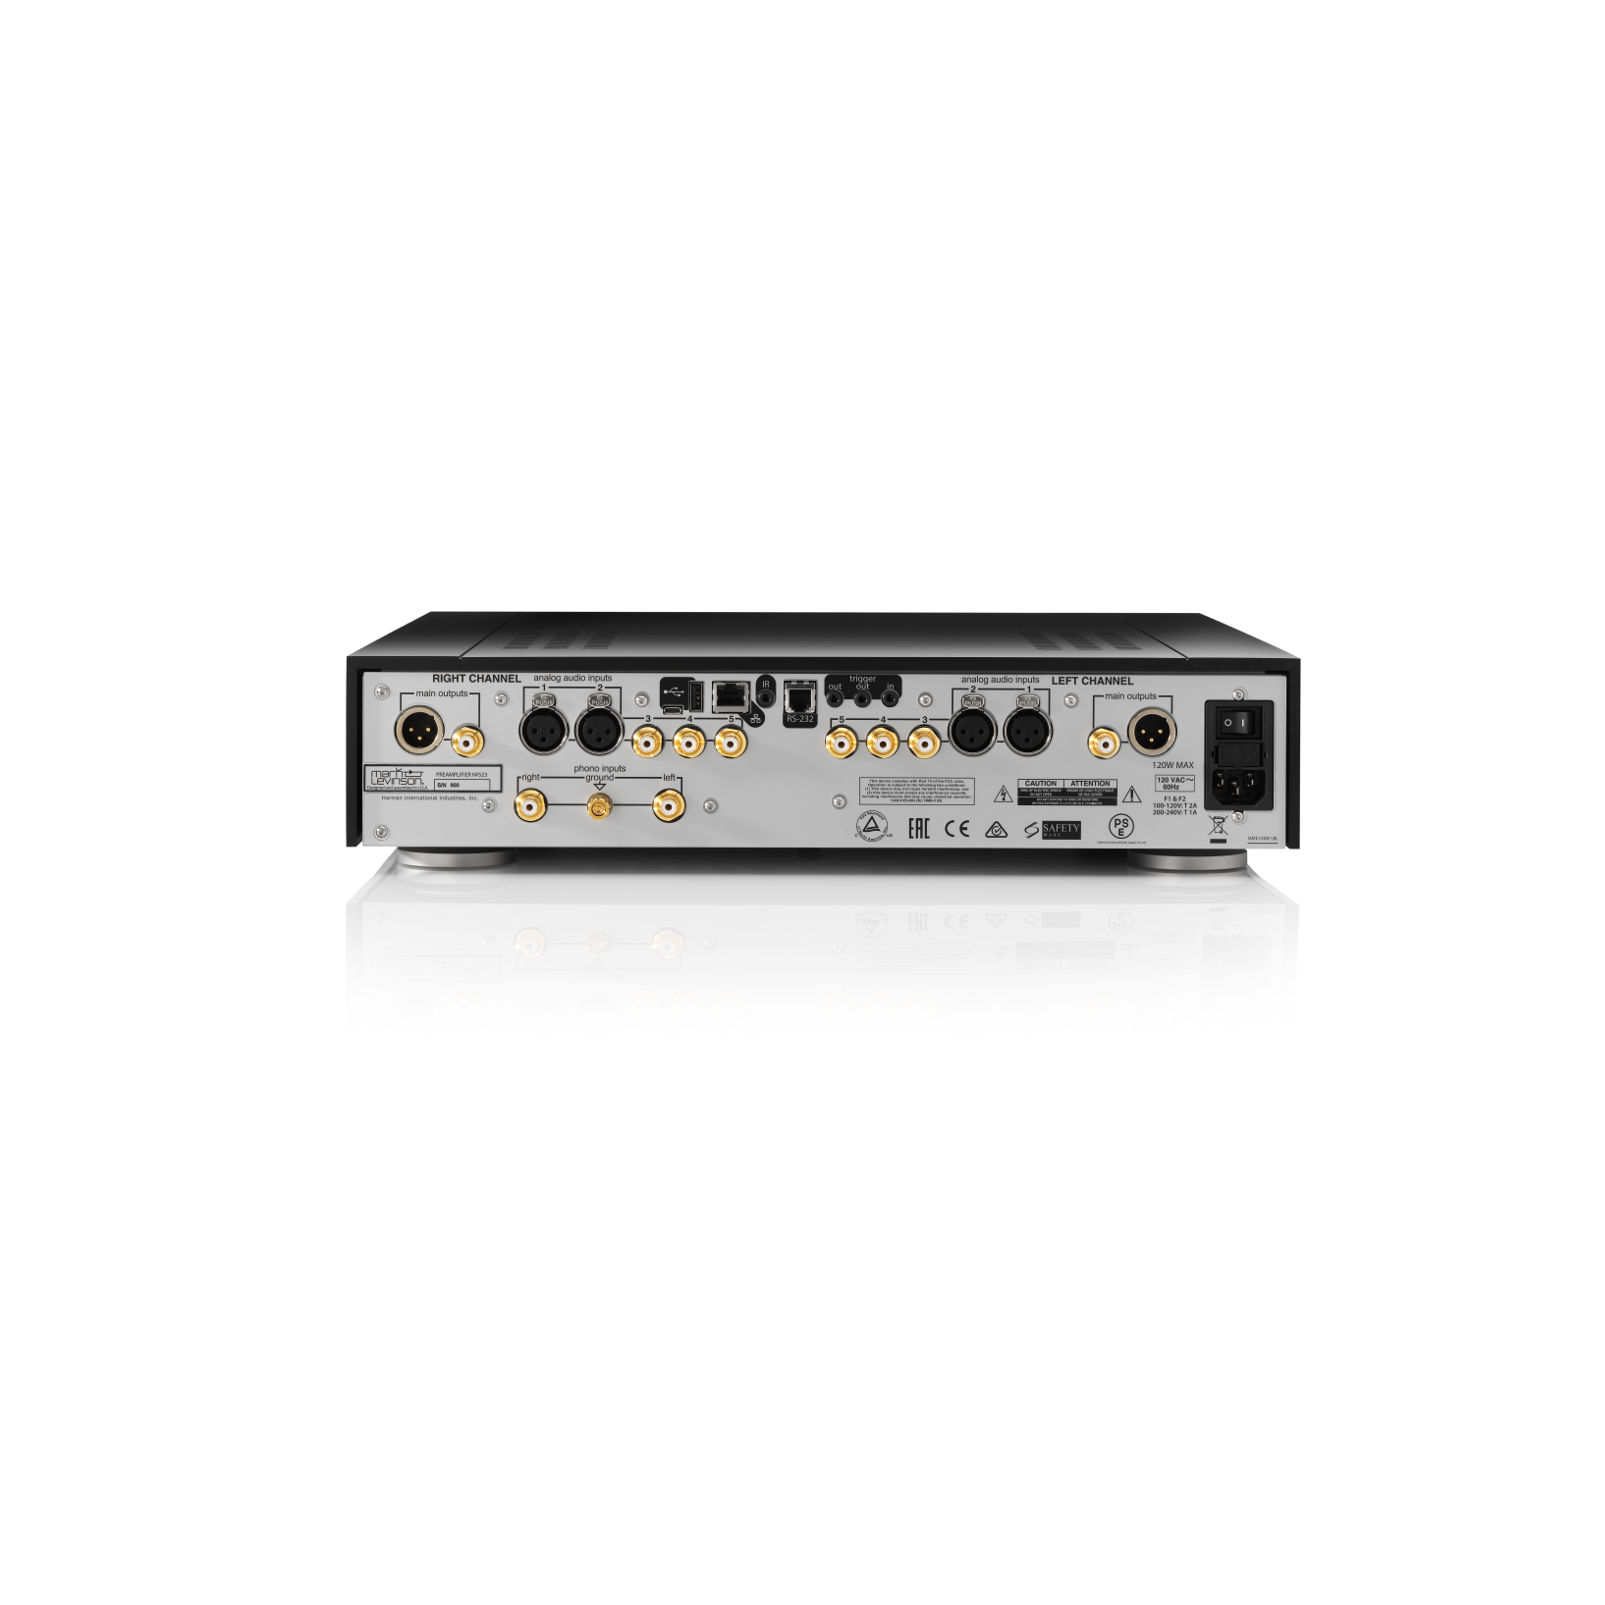 № 523 - Black - Dual-Monaural Preamplifier for Analog Sources - Back